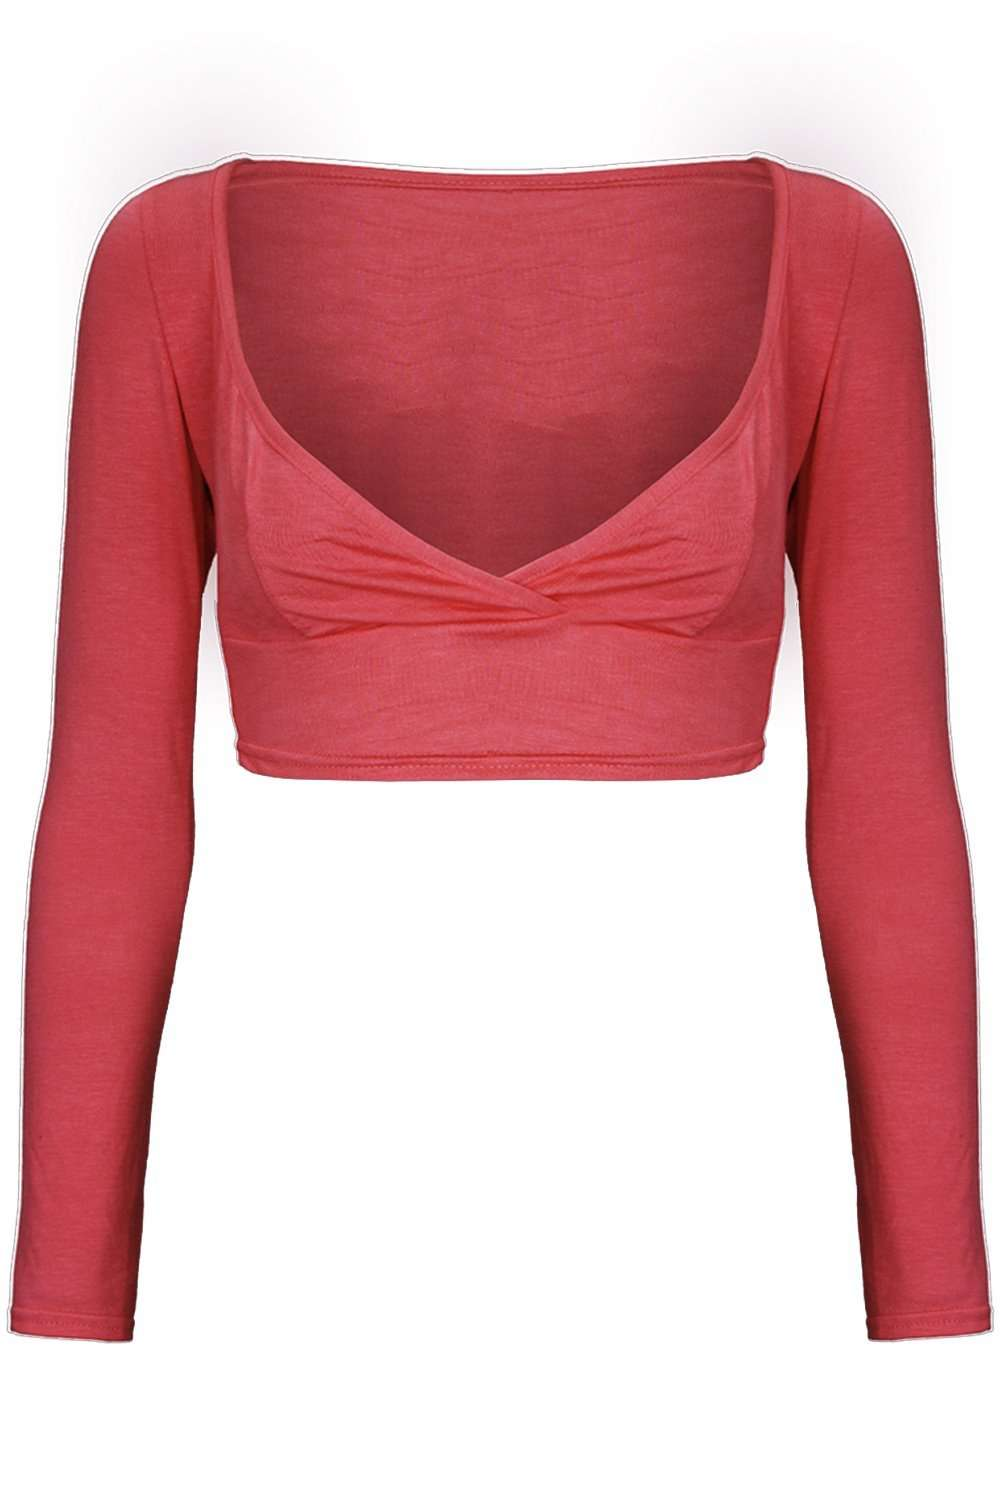 Bianka Long Sleeve Wrap Front Crop Top - bejealous-com